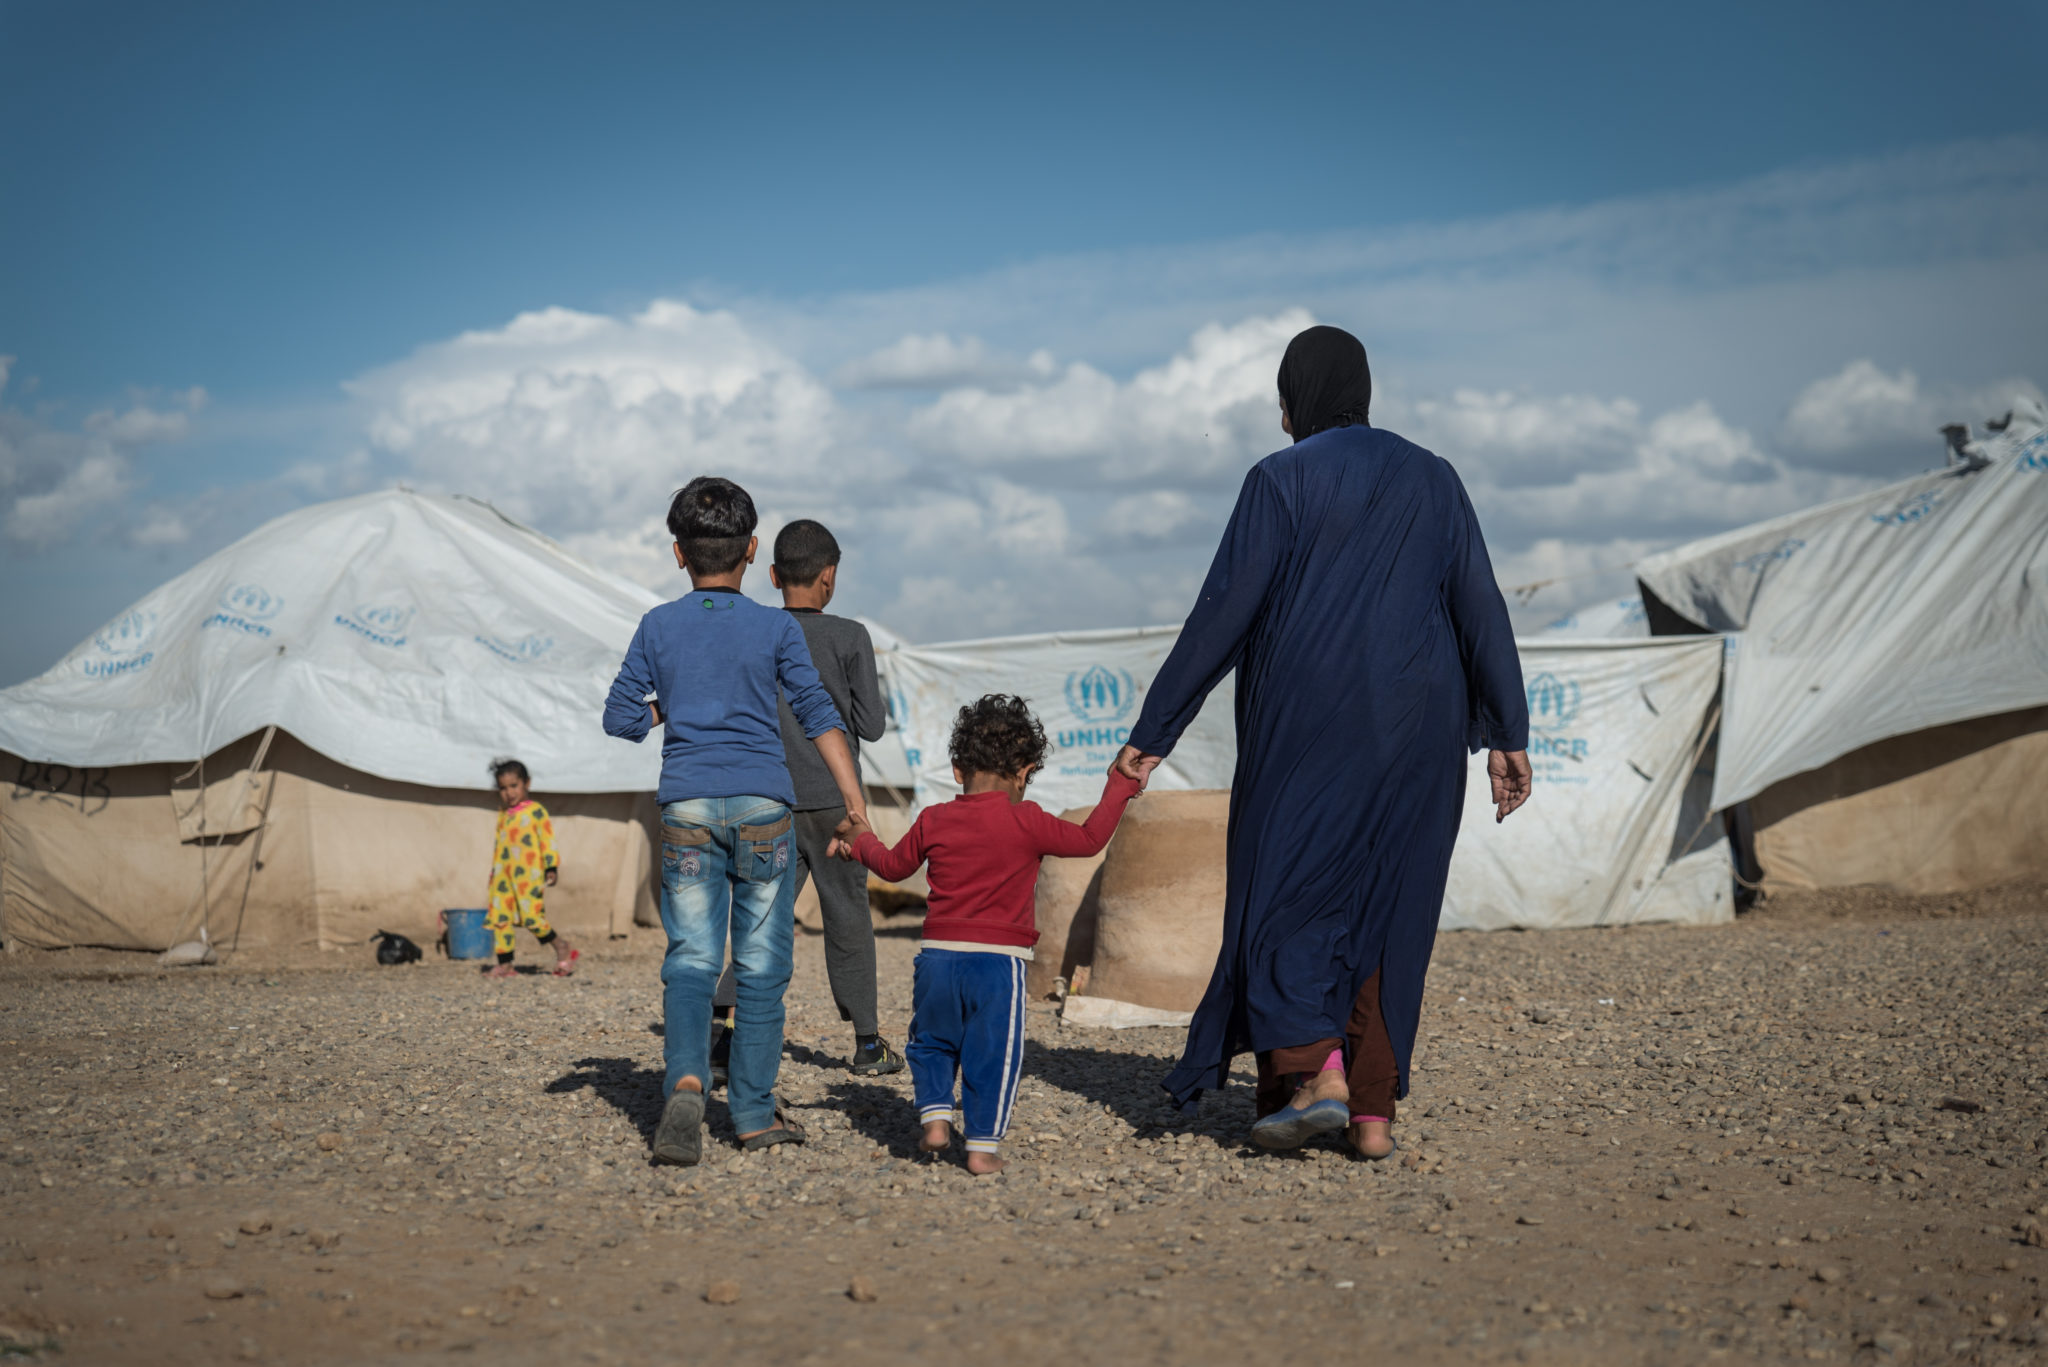 Iraq: Women and children with perceived ties to IS denied aid, sexually exploited and trapped in camps